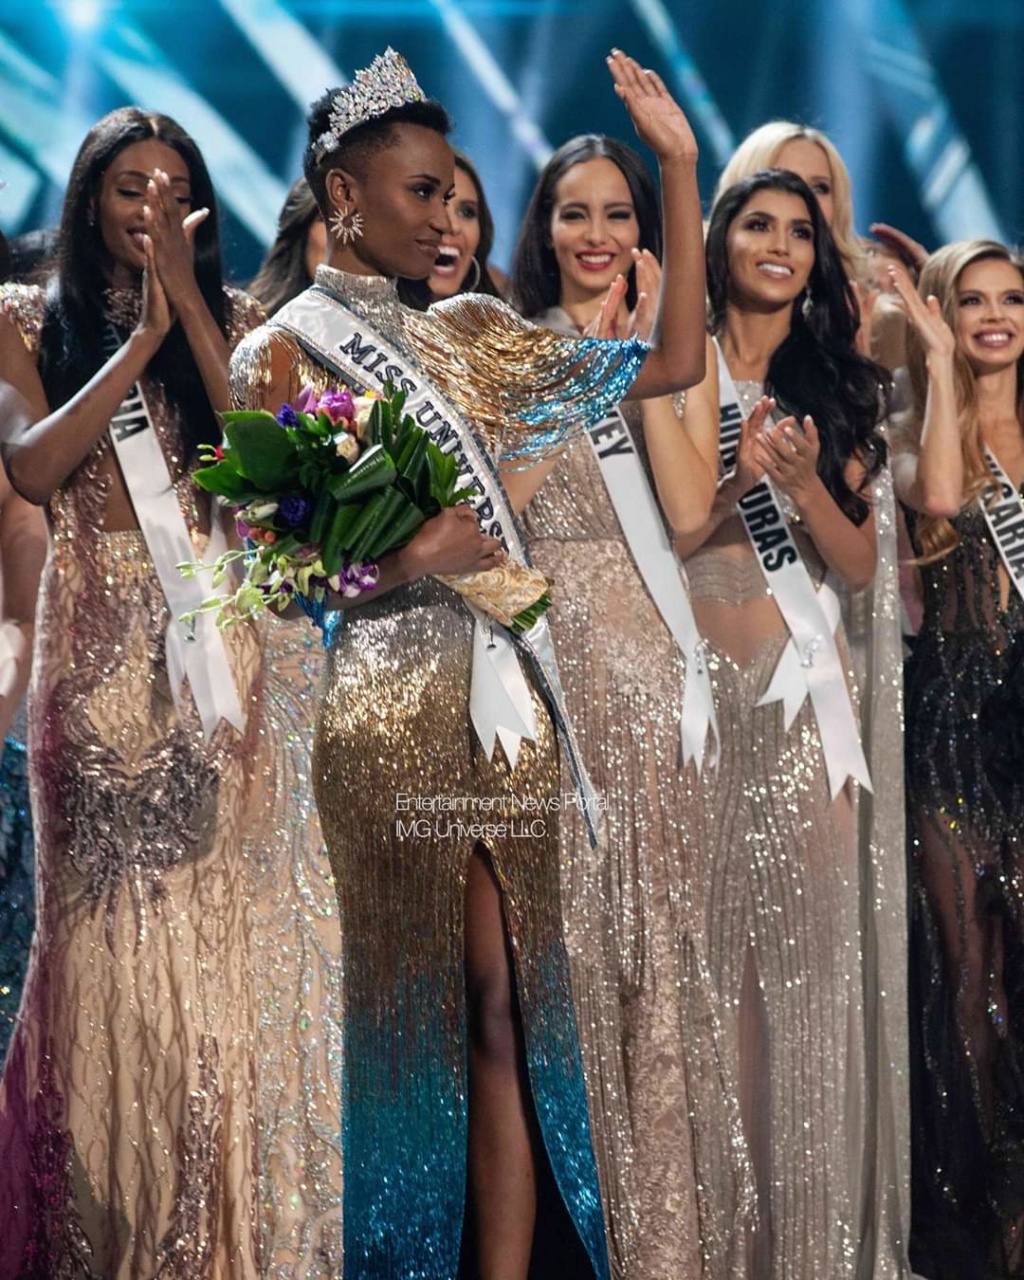 The Official Thread Of Miss Universe 2019 : Zozibini Tunzi of South Africa Fb_14409